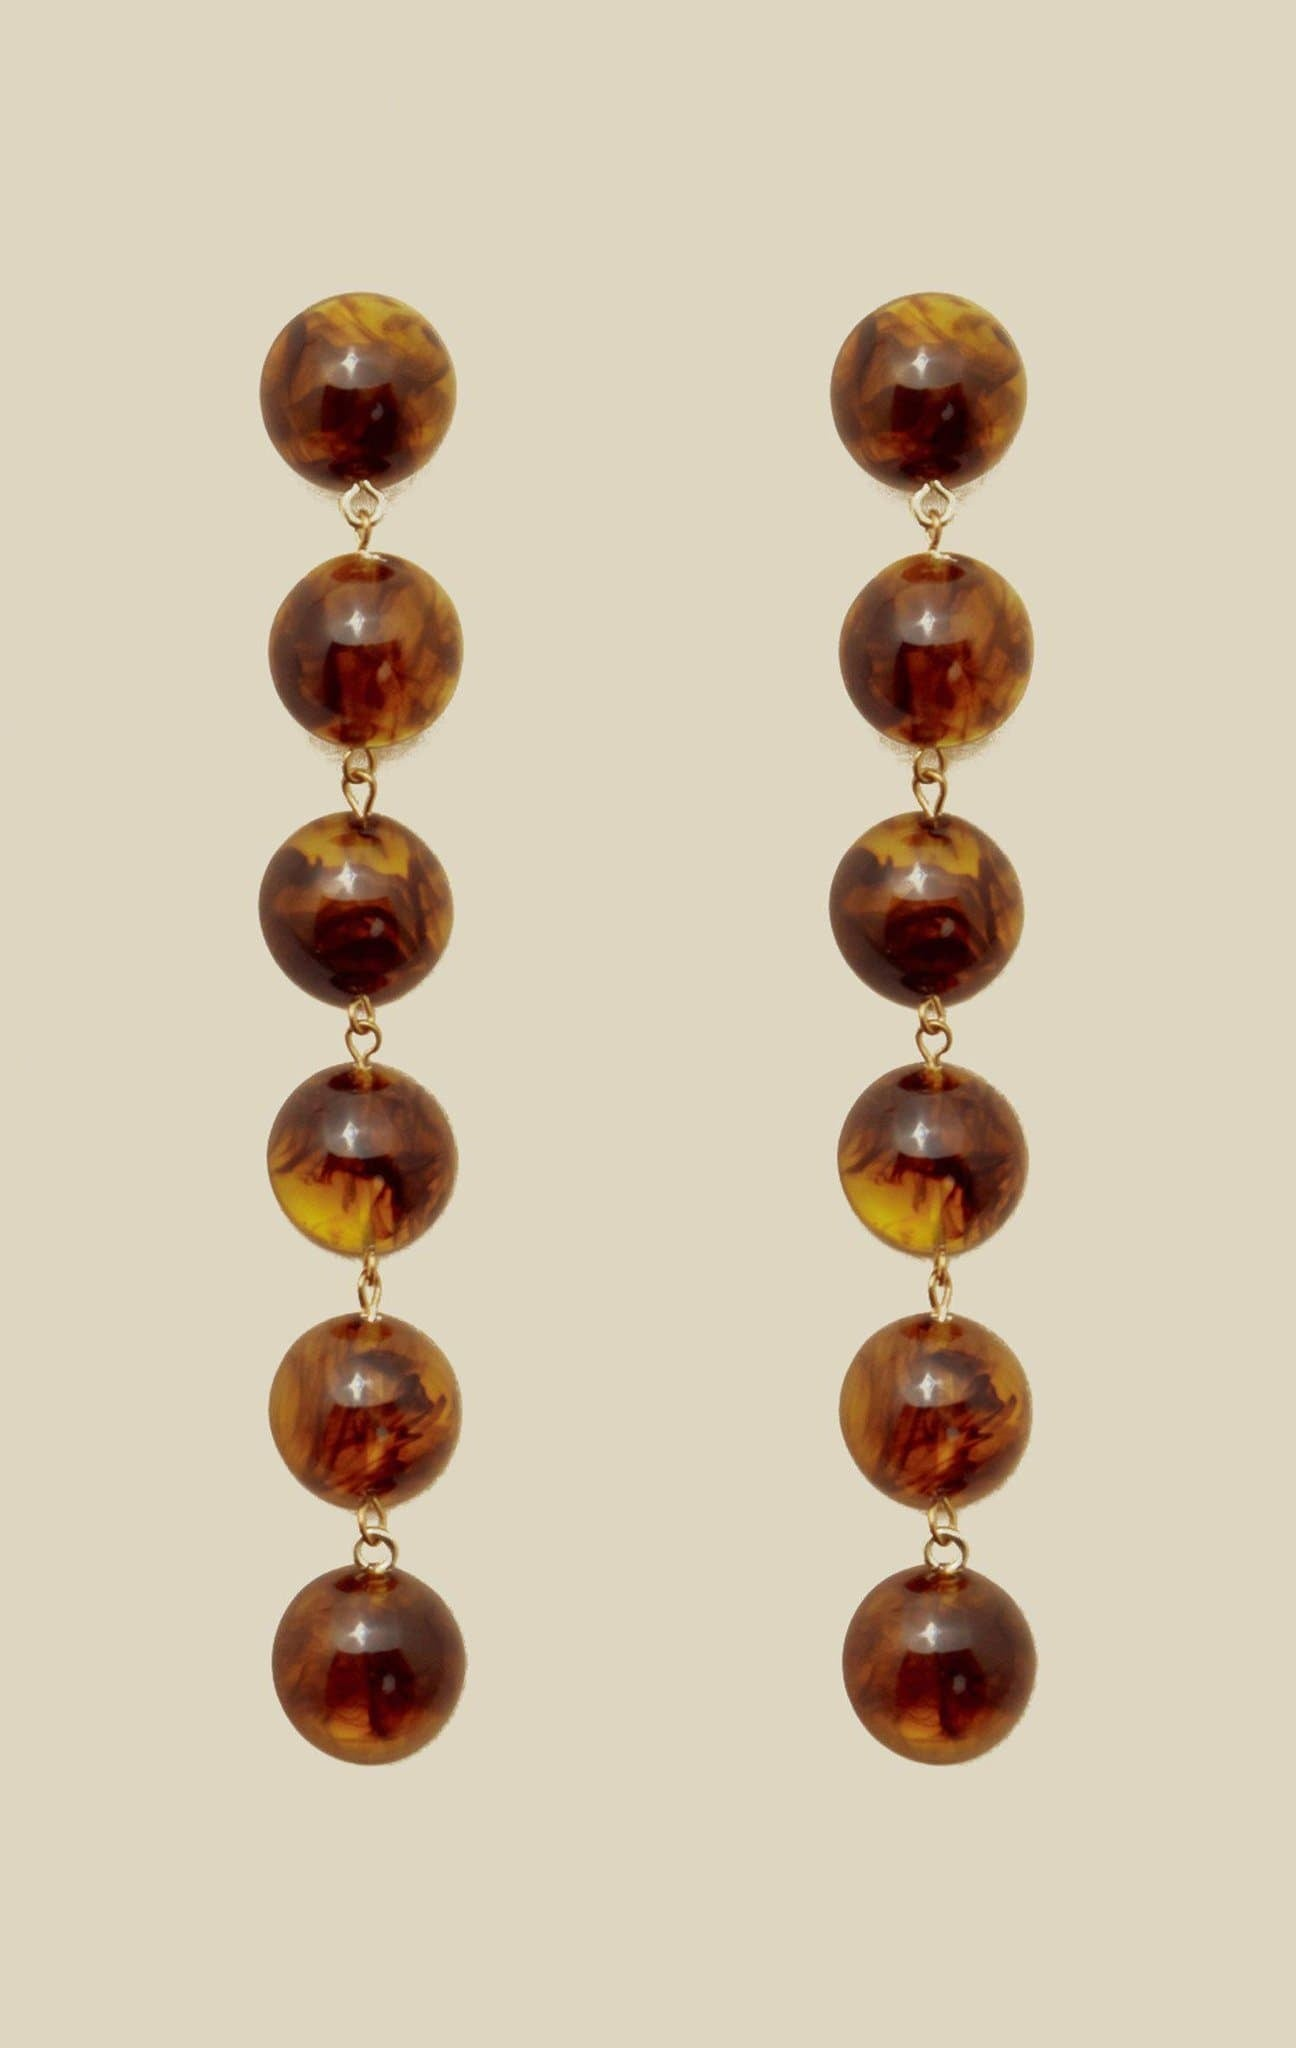 VALET TALLULAH EARRINGS - TORTOISE